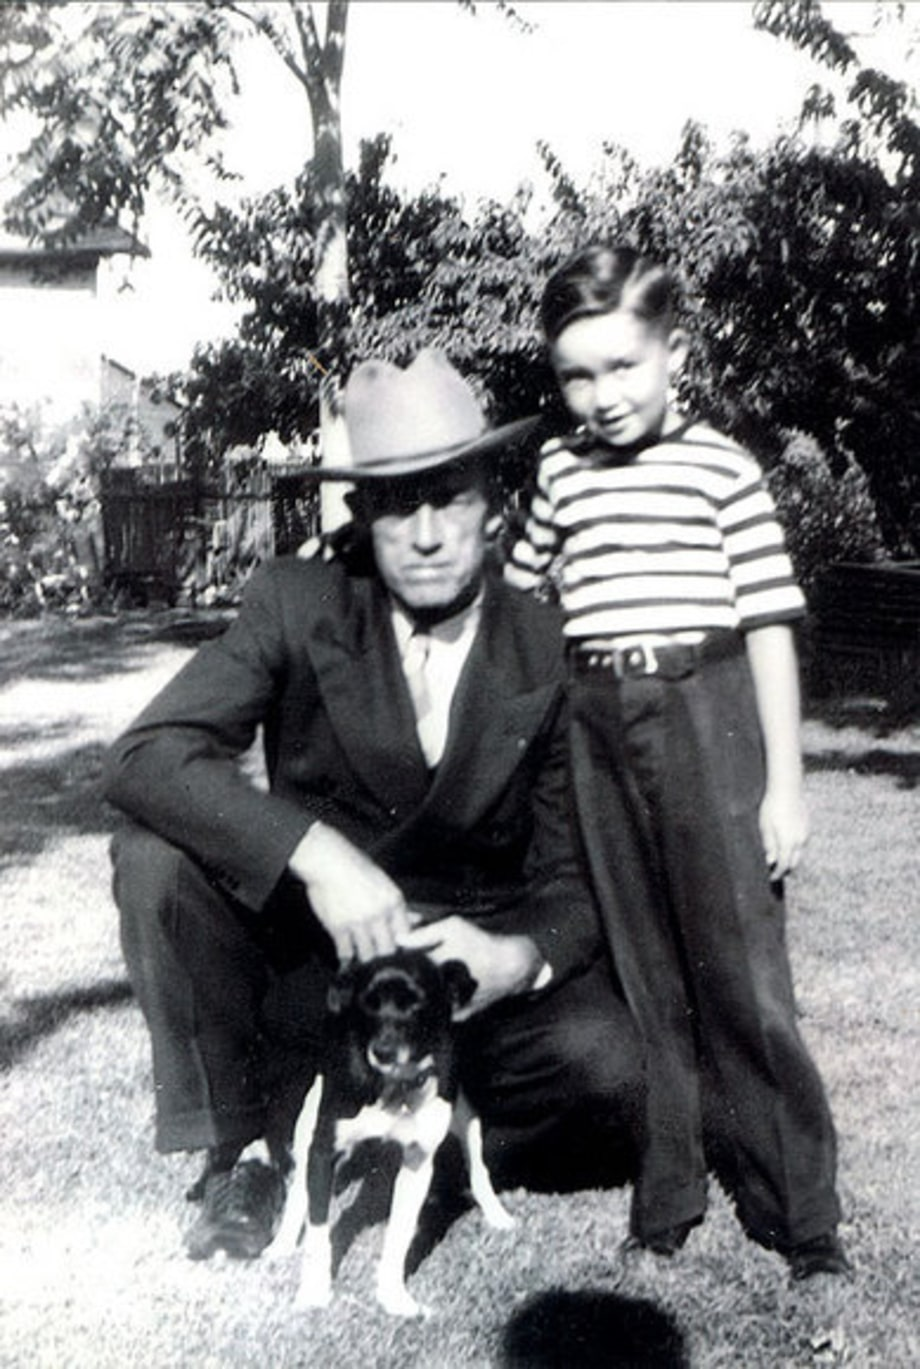 Merle Haggard: 1944: with his father and dog